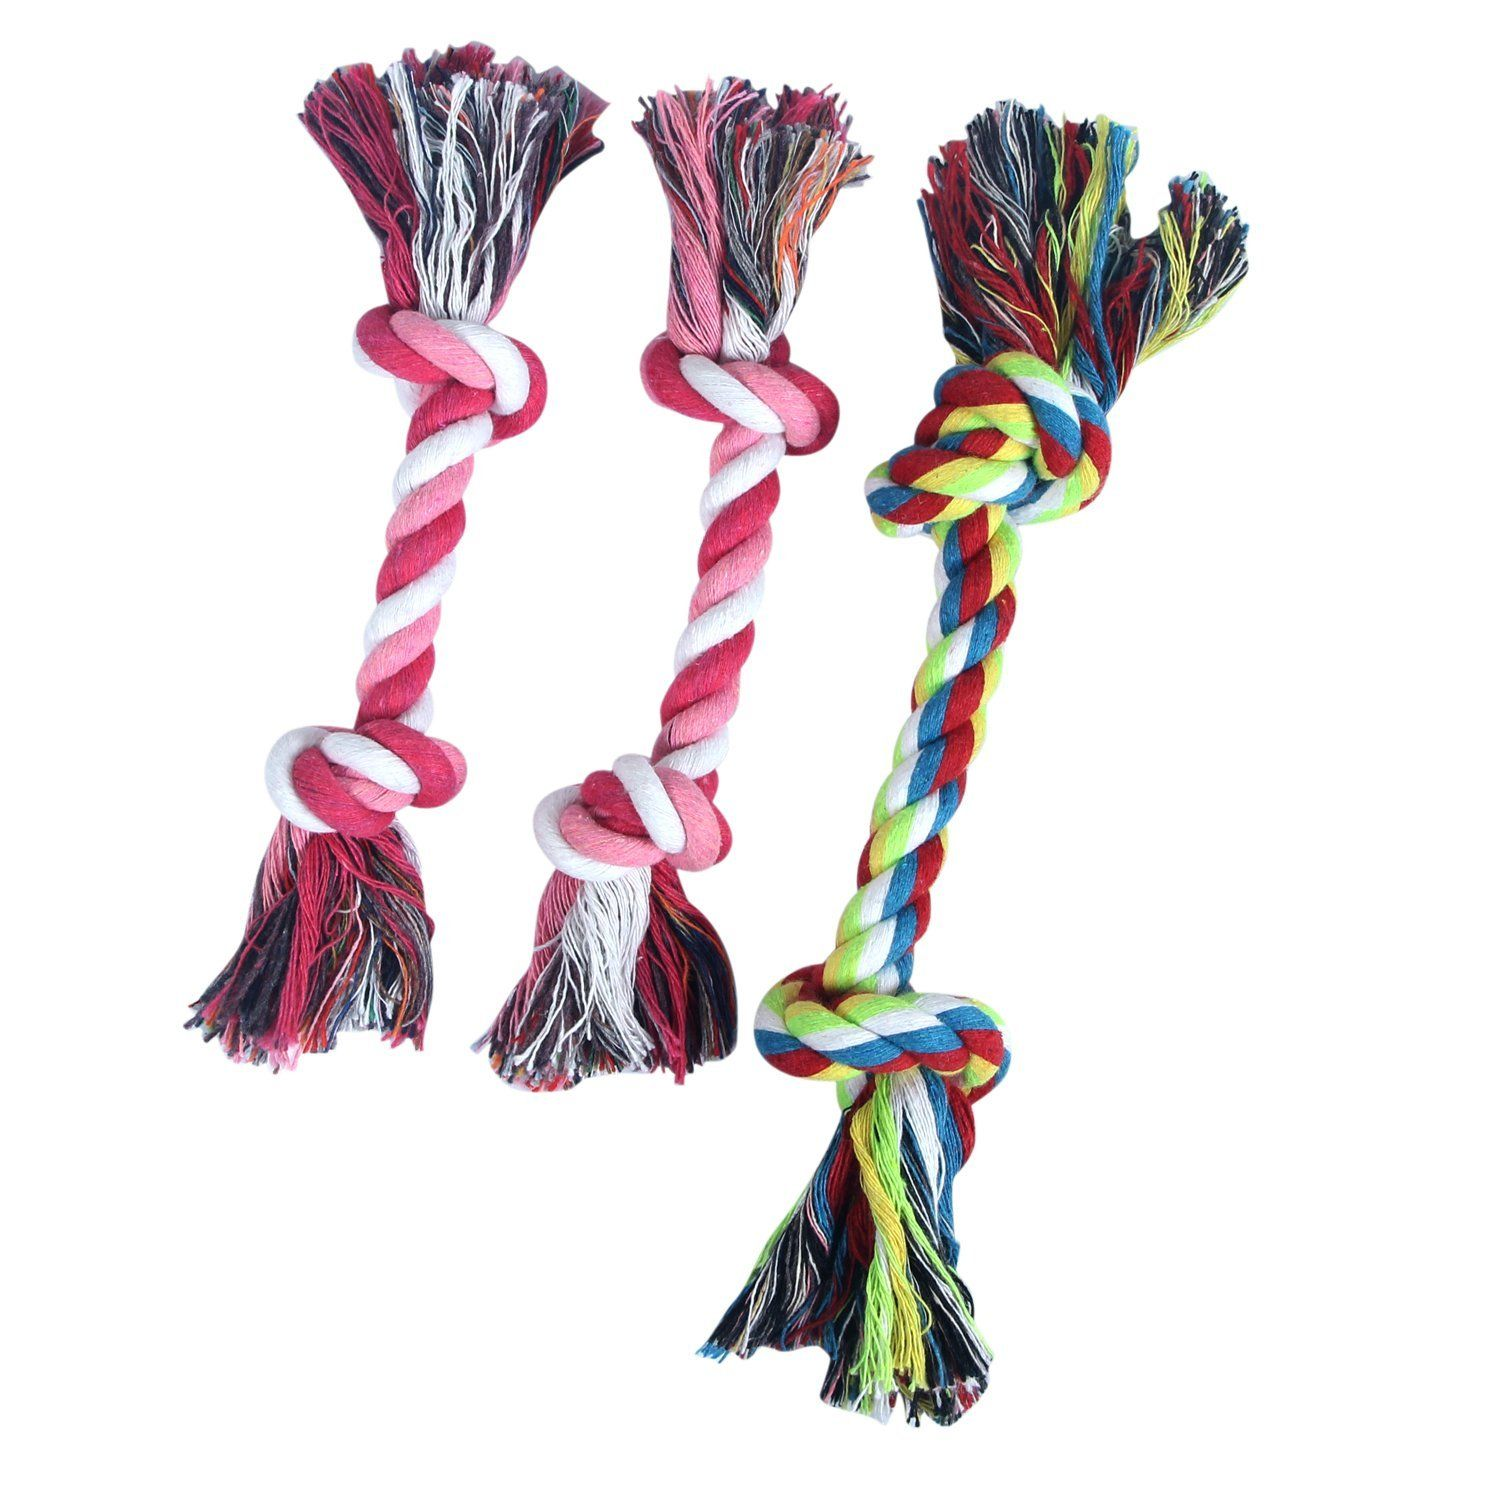 Maomao Pet Dog Puppies Chews 2 Knot Cotton Rope Tug Toys Pack Of 3